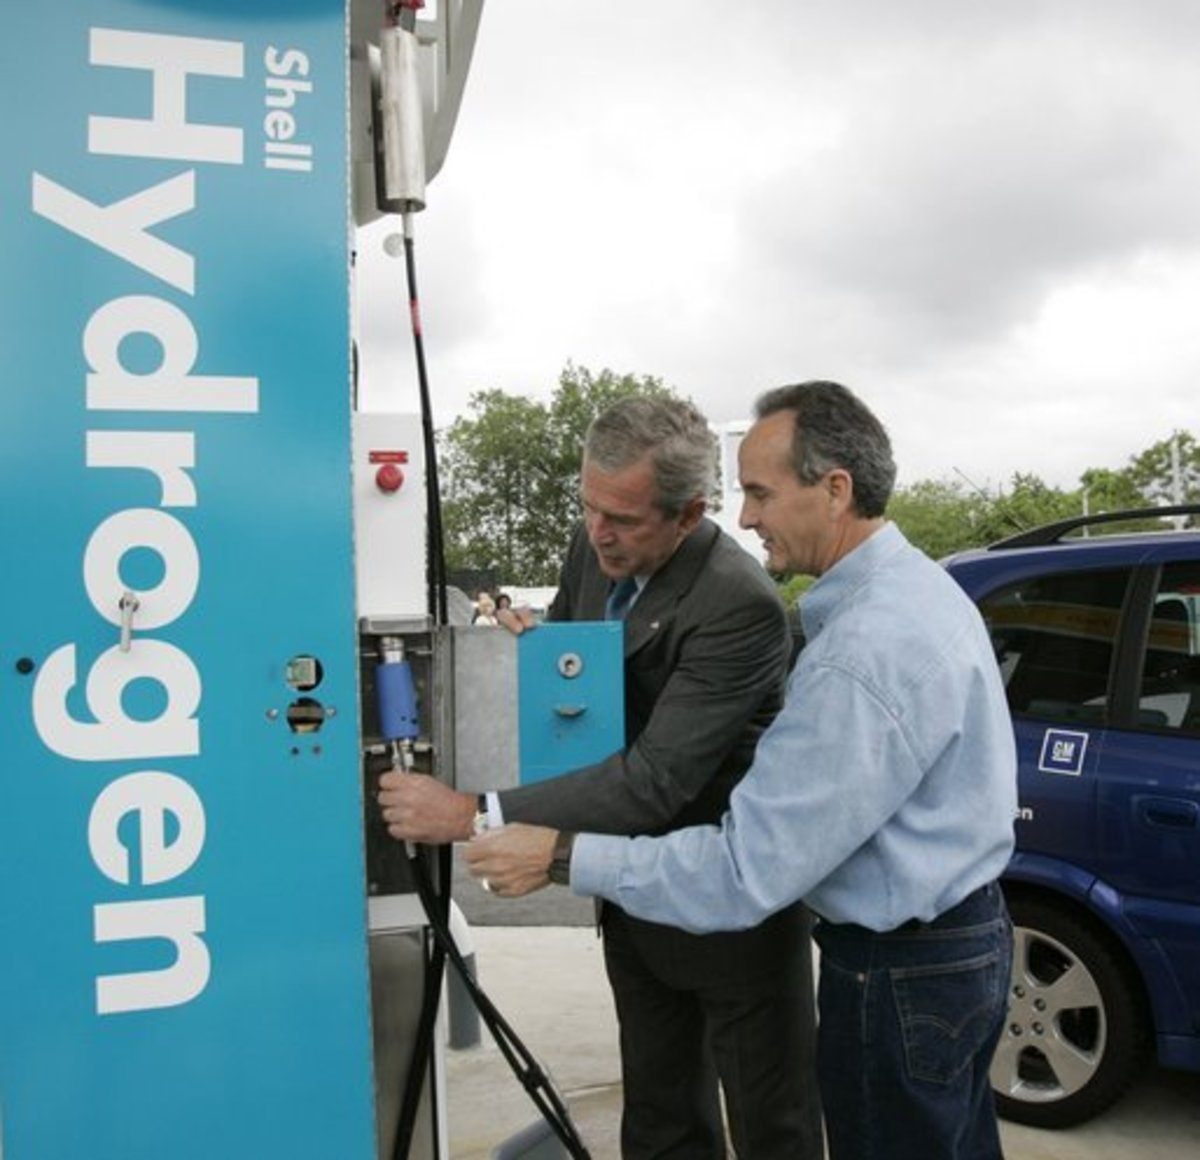 President George W. Bush checks out a hydrogen refuelling station in 2005.